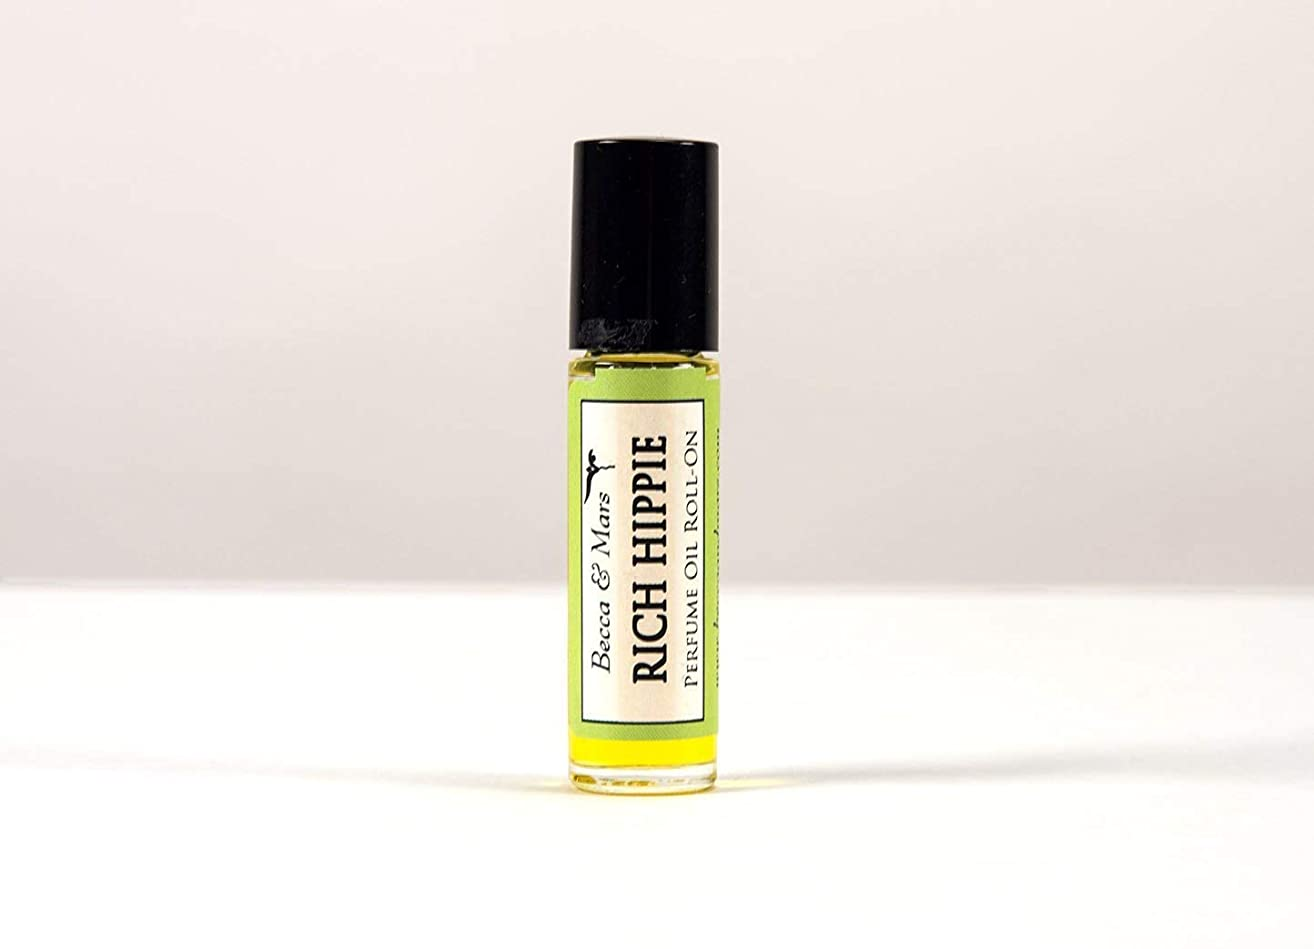 Rich Hippie Natural Perfume Roll On, Sandalwood and Patchouli, Perfume Oil